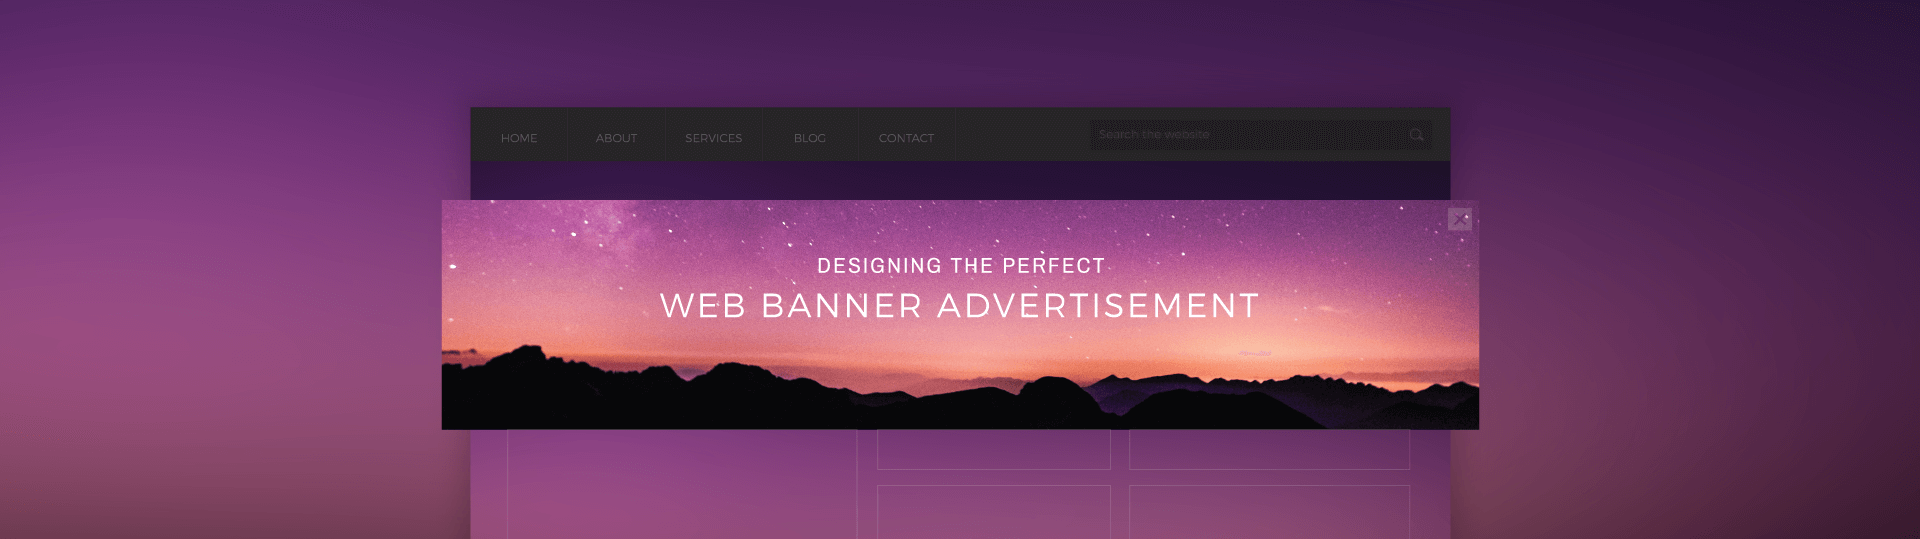 Designing-the-Perfect-Web-Banner-Advertisement_BANNER